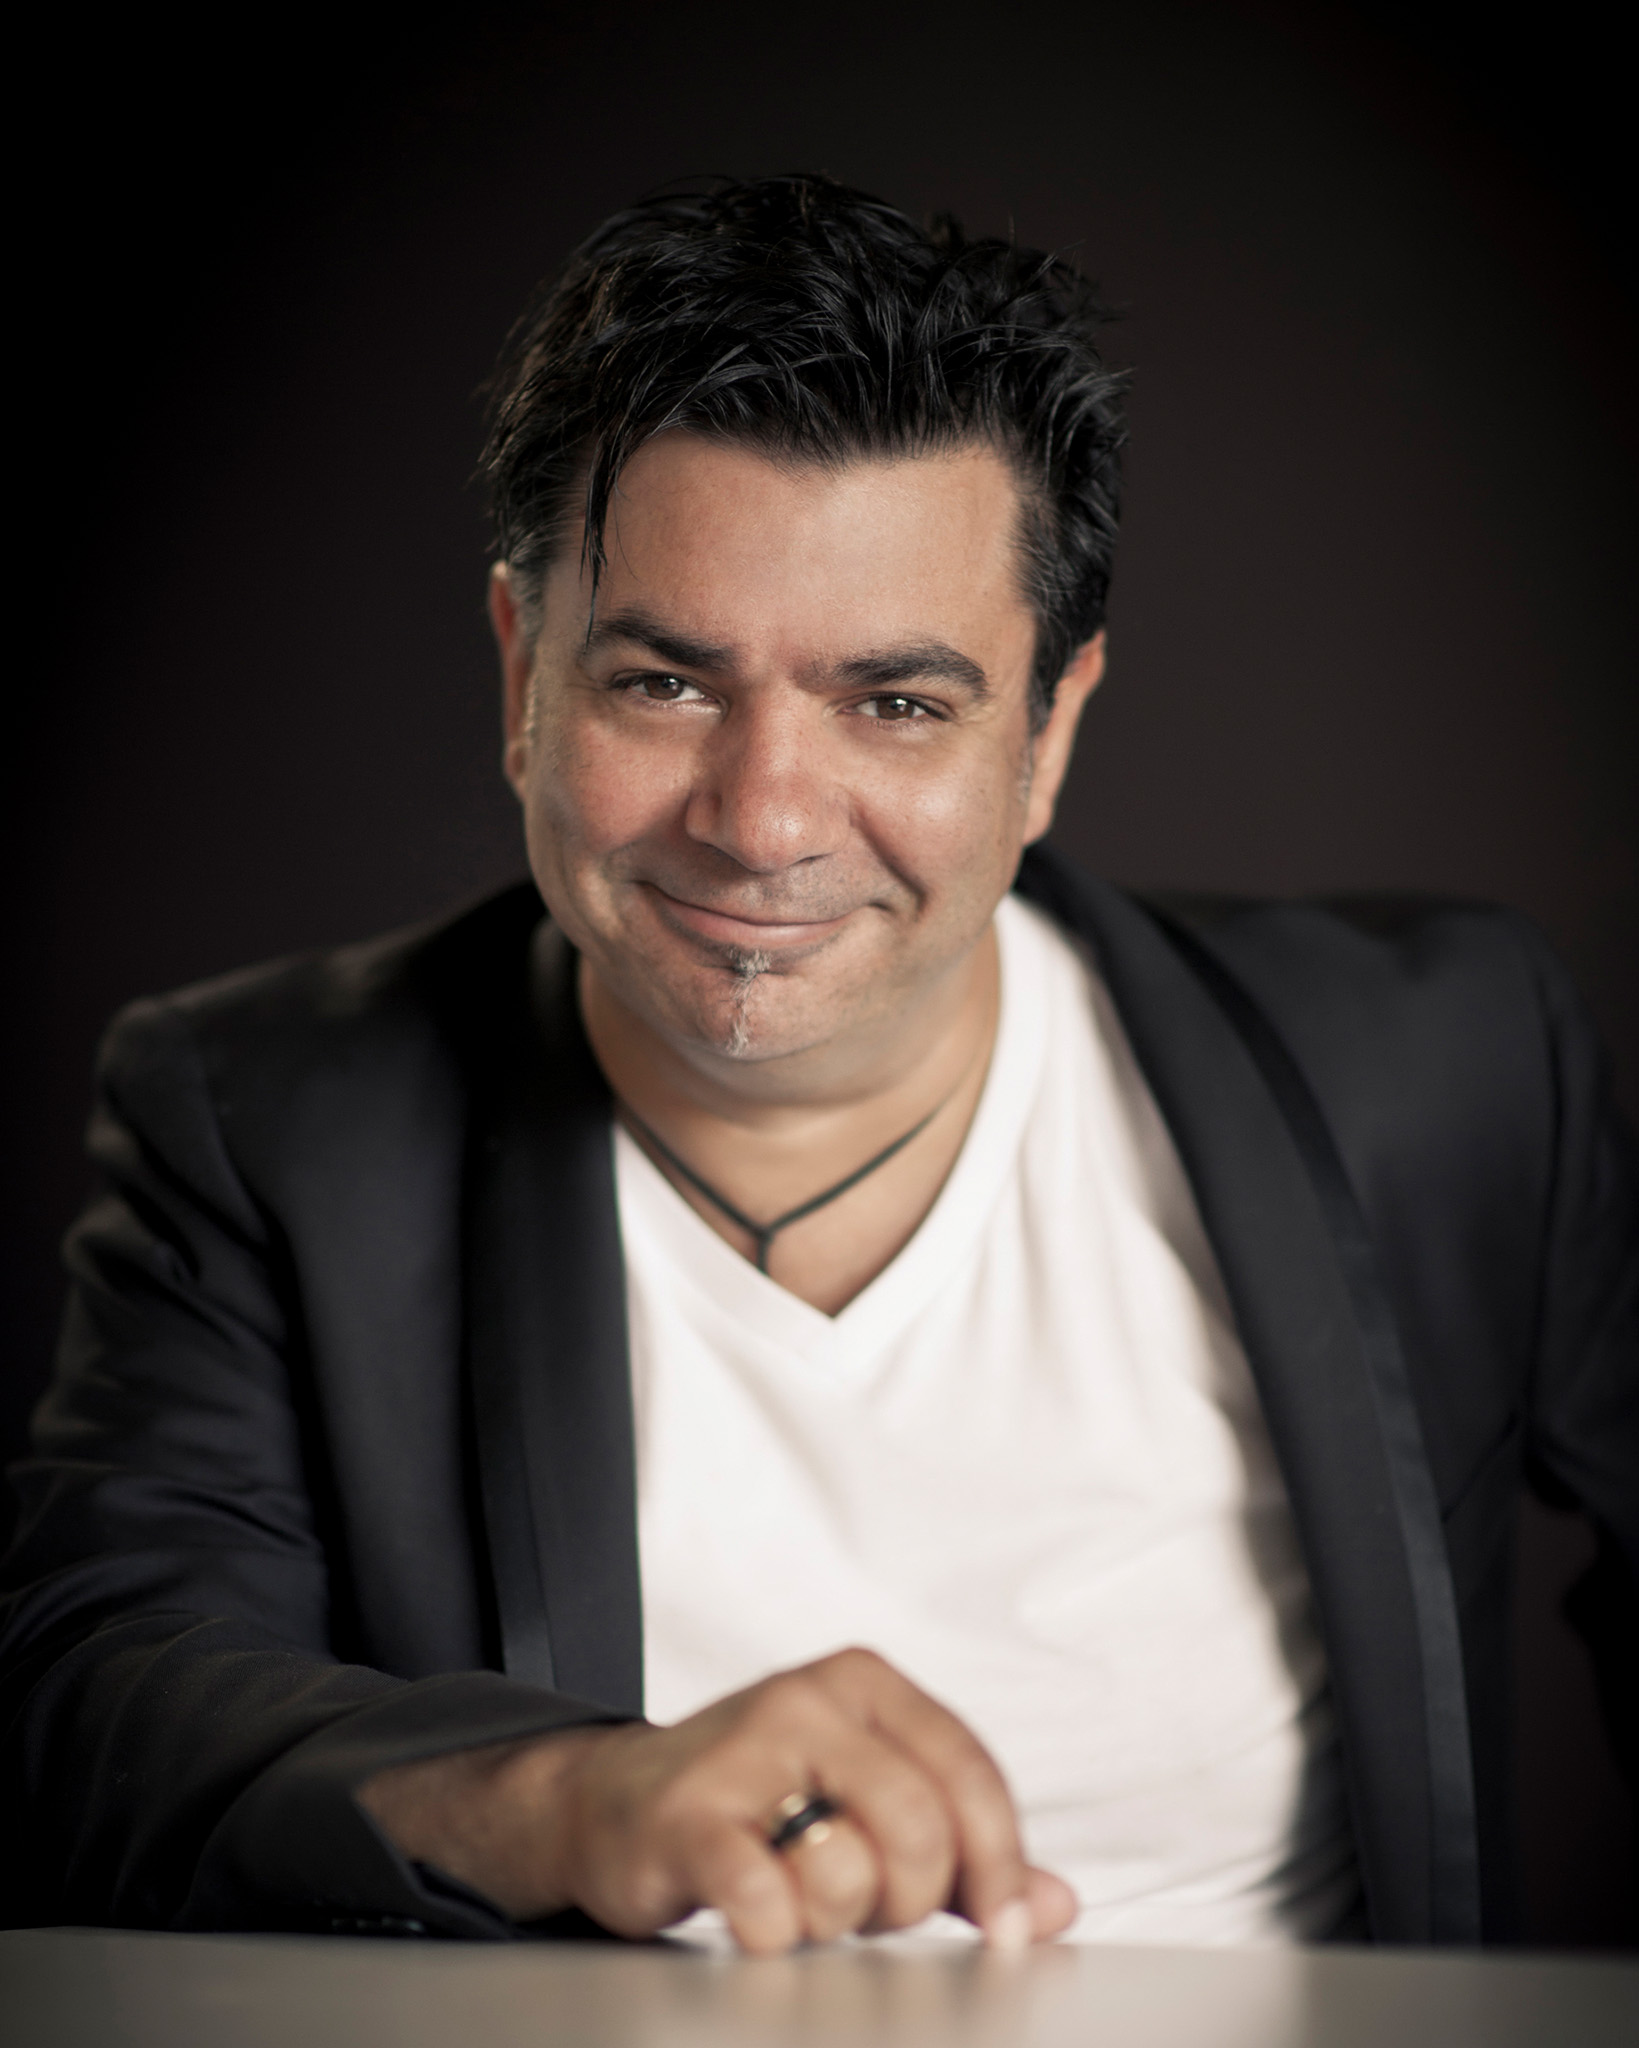 portrait of award winning Melbourne wedding photographer Rocco Ancora smiling looking into camera